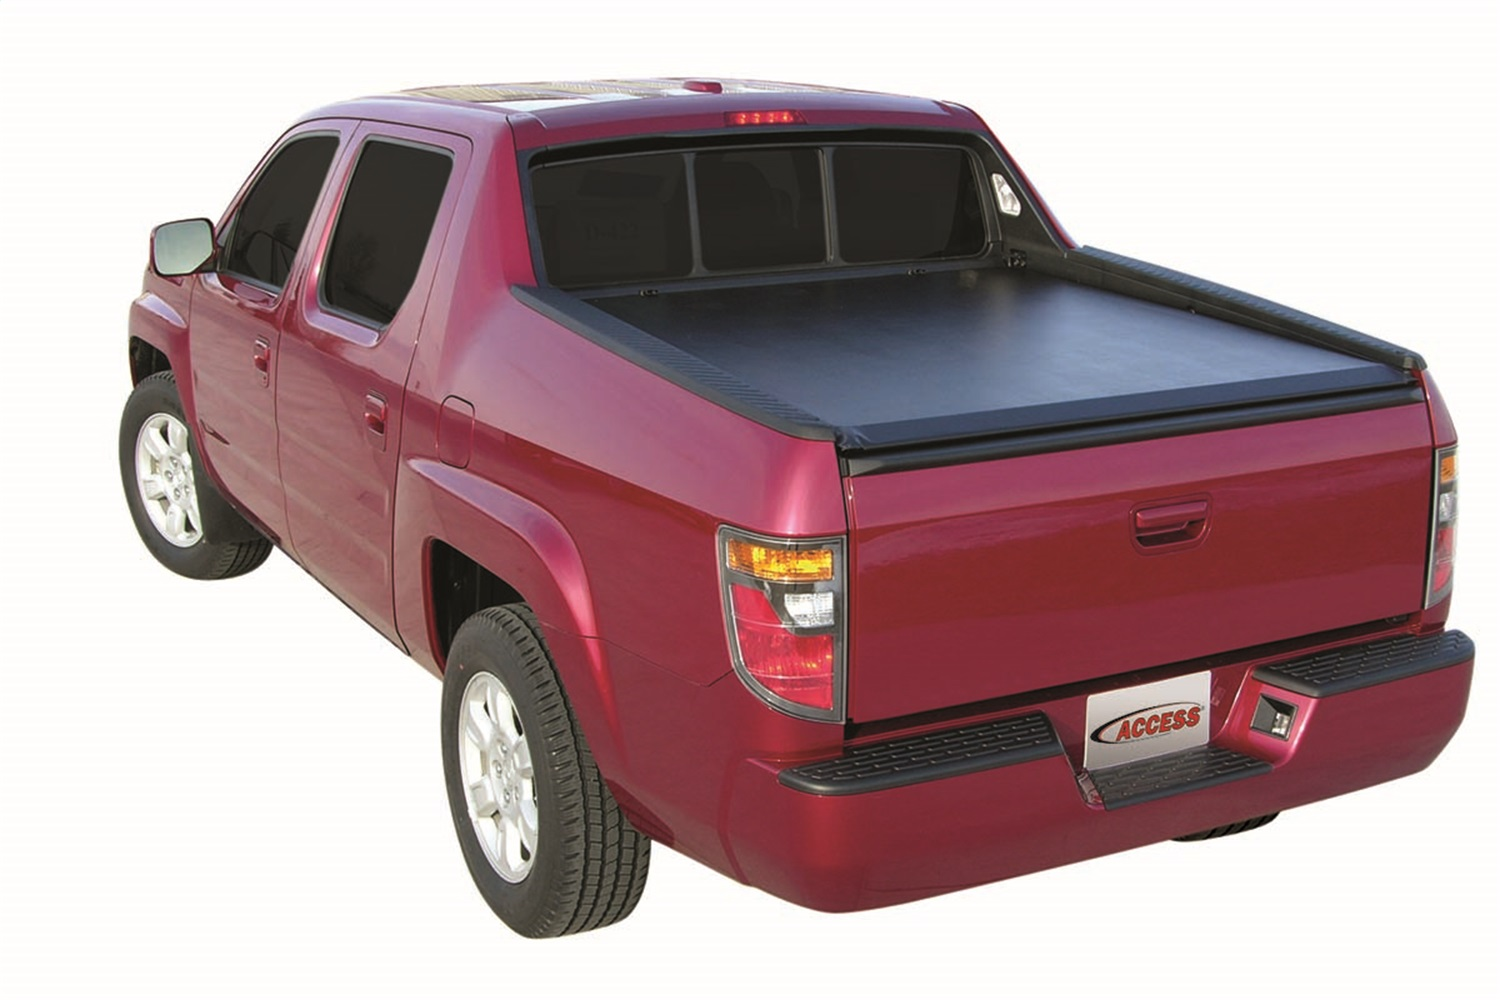 Access Cover 16019 ACCESS Original Roll-Up Cover Fits 06-14 Ridgeline